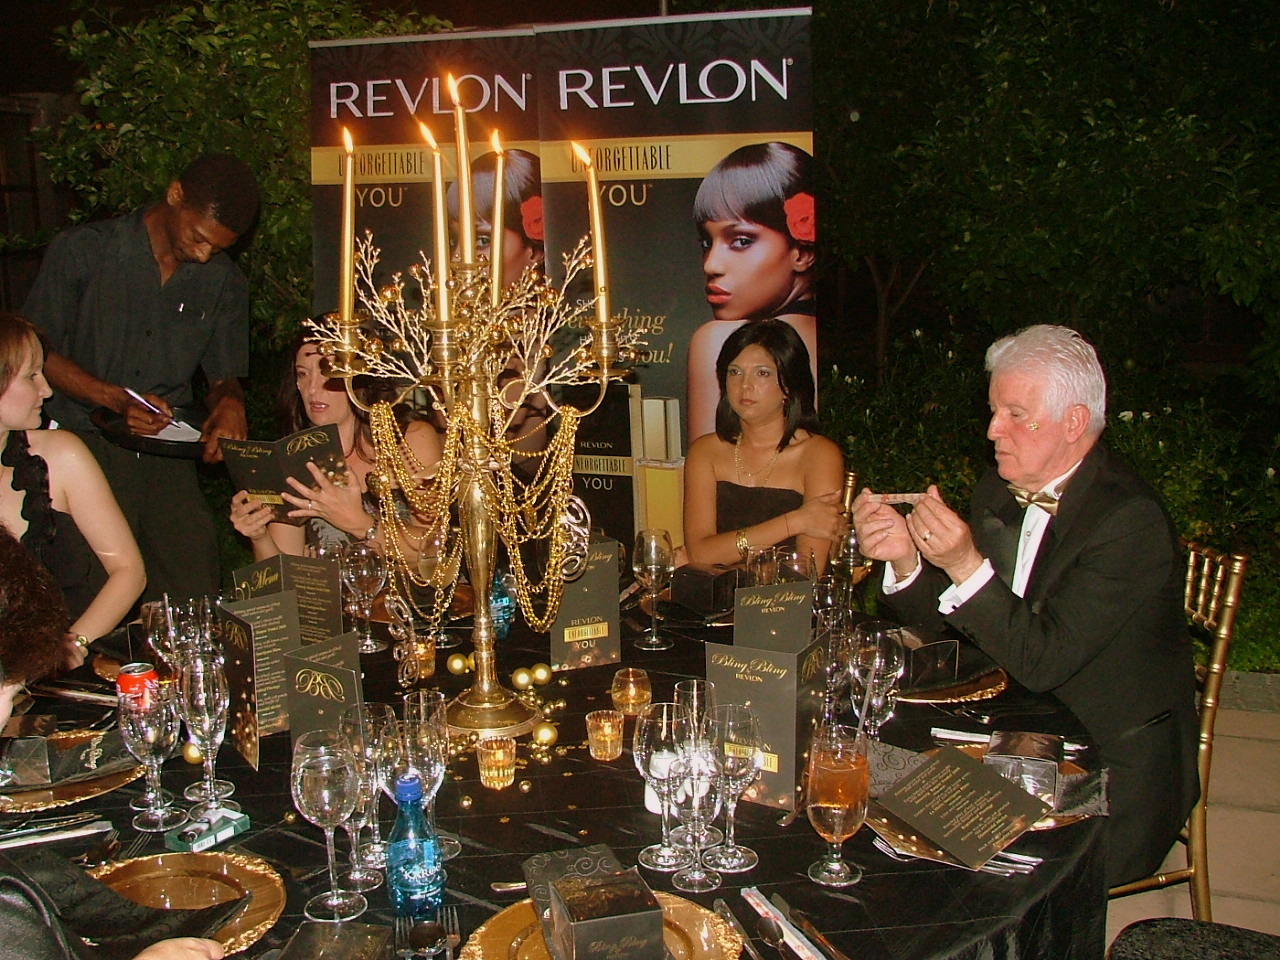 28-Revlon January 2012 Cycle Meeting Sante 029